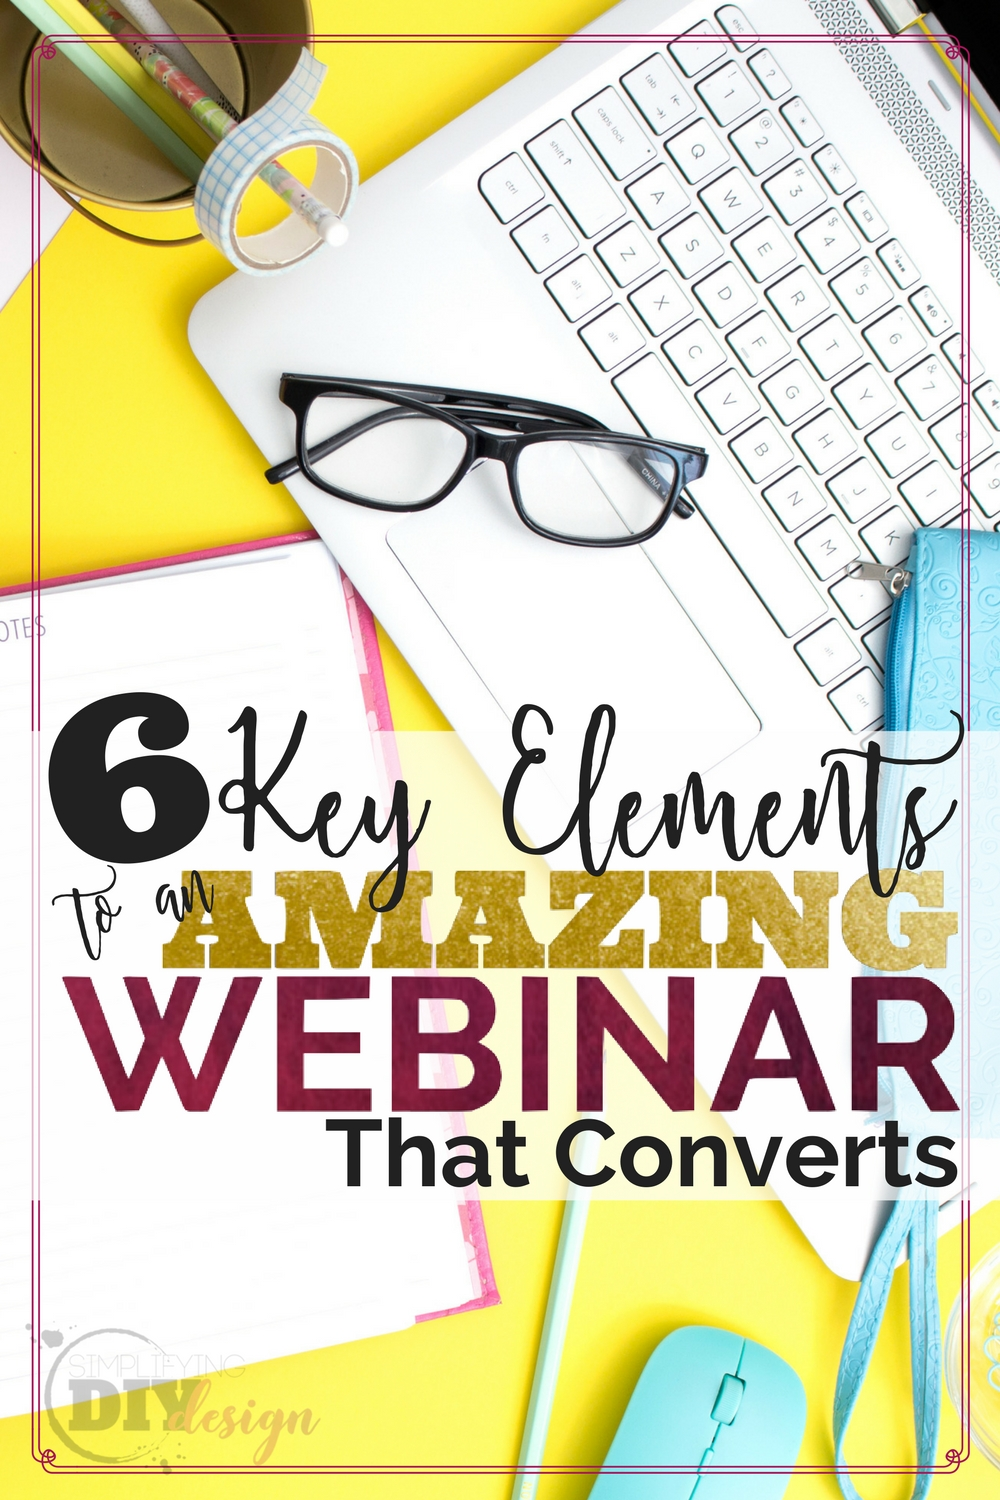 Awesome! I first webinar crashed but after I implemented the steps here I was able to create a webinar that converted to sales and helped me generate income with my blog!